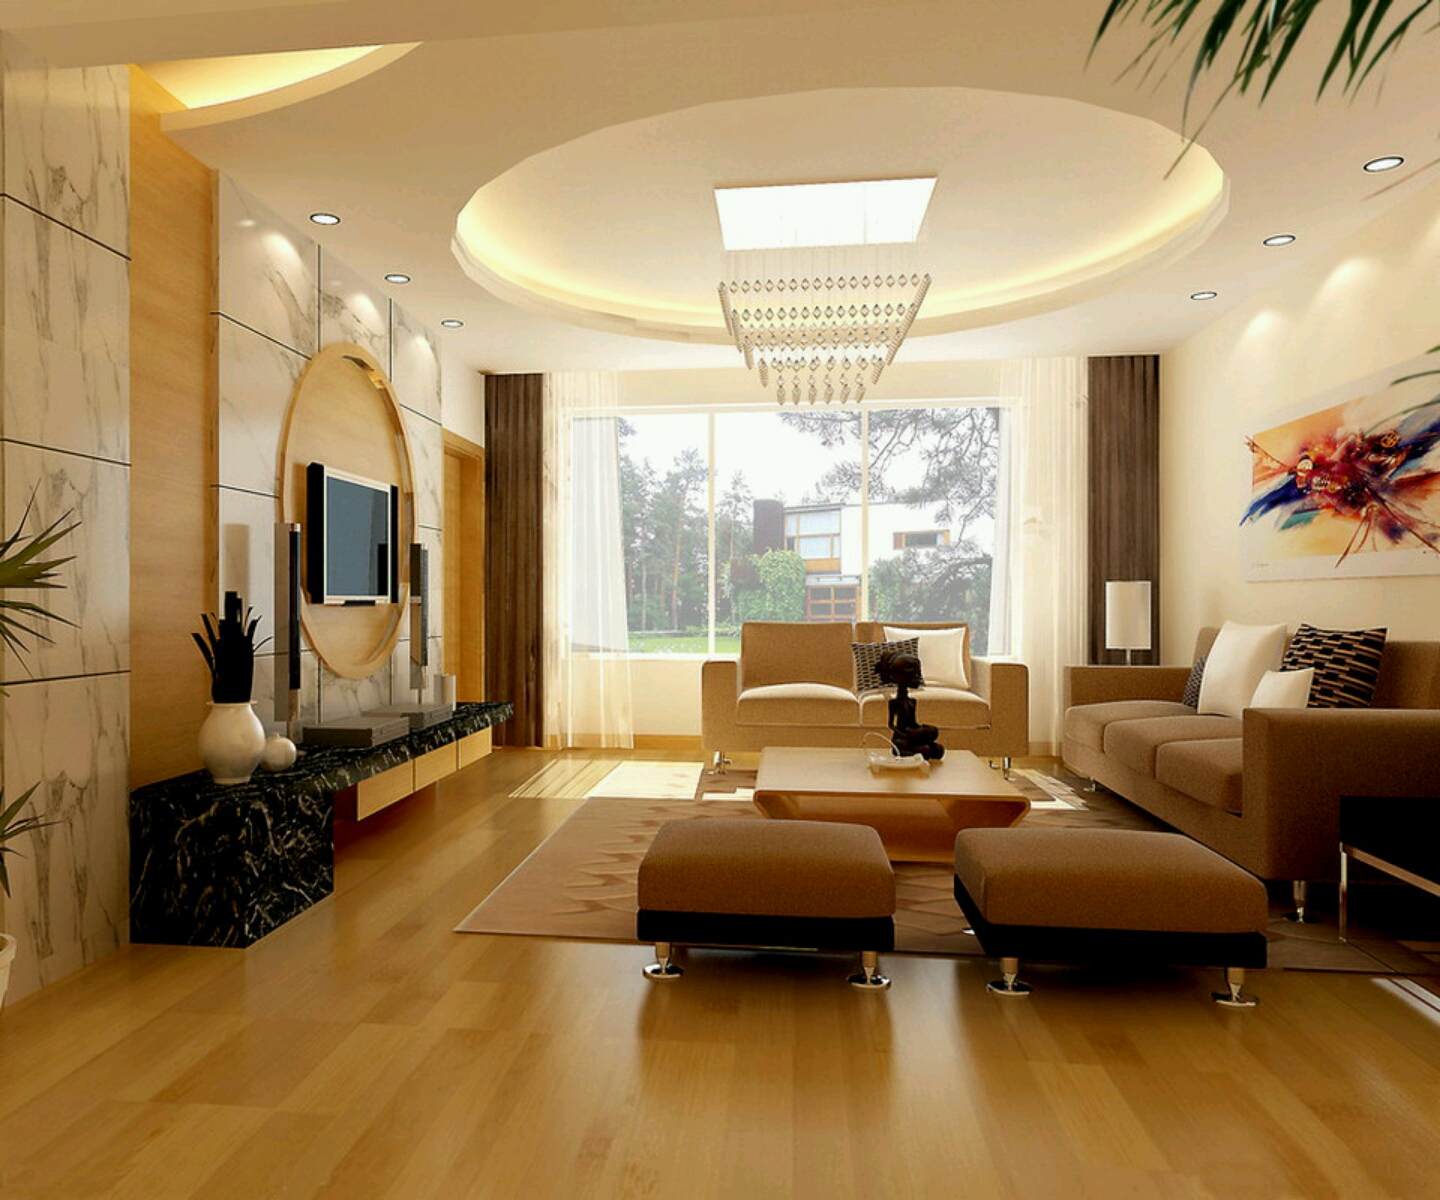 New Home Designs Latest Luxury Living Rooms Interior: Modern Interior Decoration Living Rooms Ceiling Designs